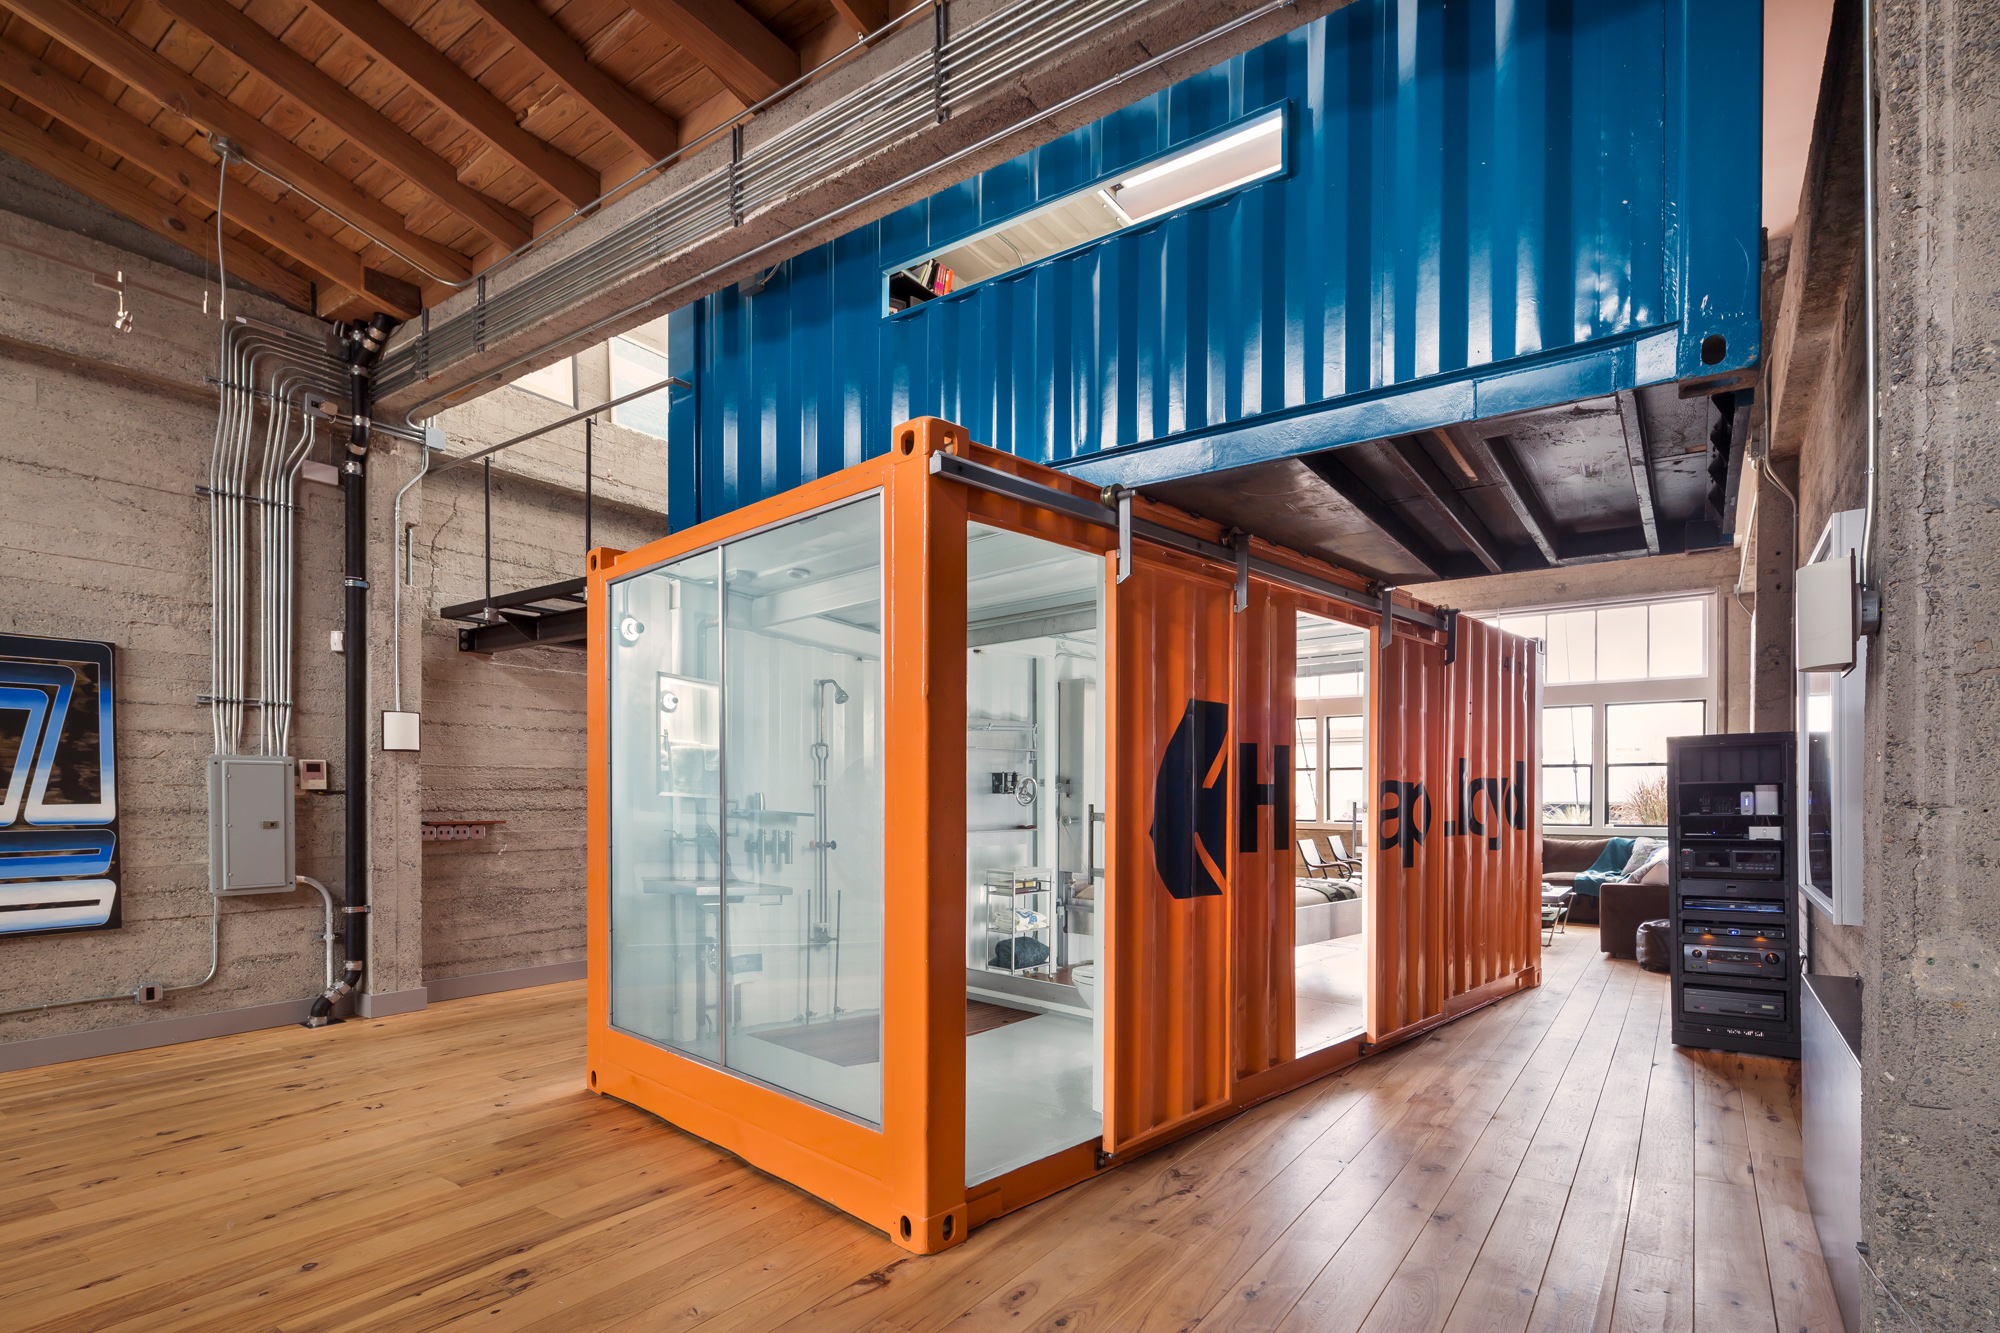 san francisco shipping container home scores $5.2 million - curbed sf